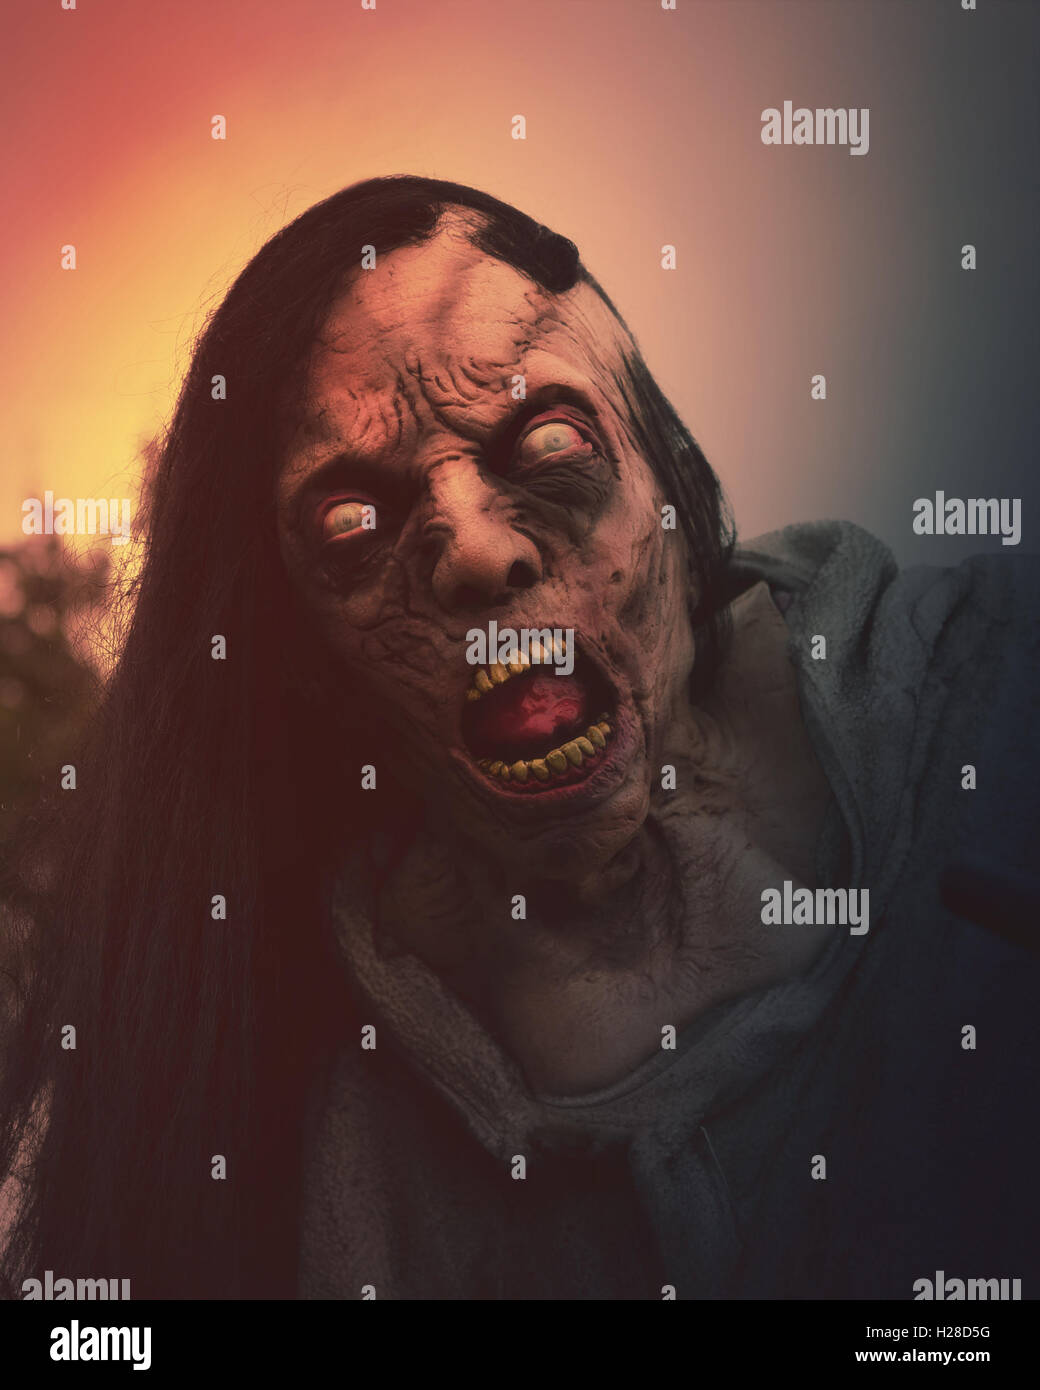 A closeup of a scary dead zombie momster outside for a halloween, fear or death concept. - Stock Image